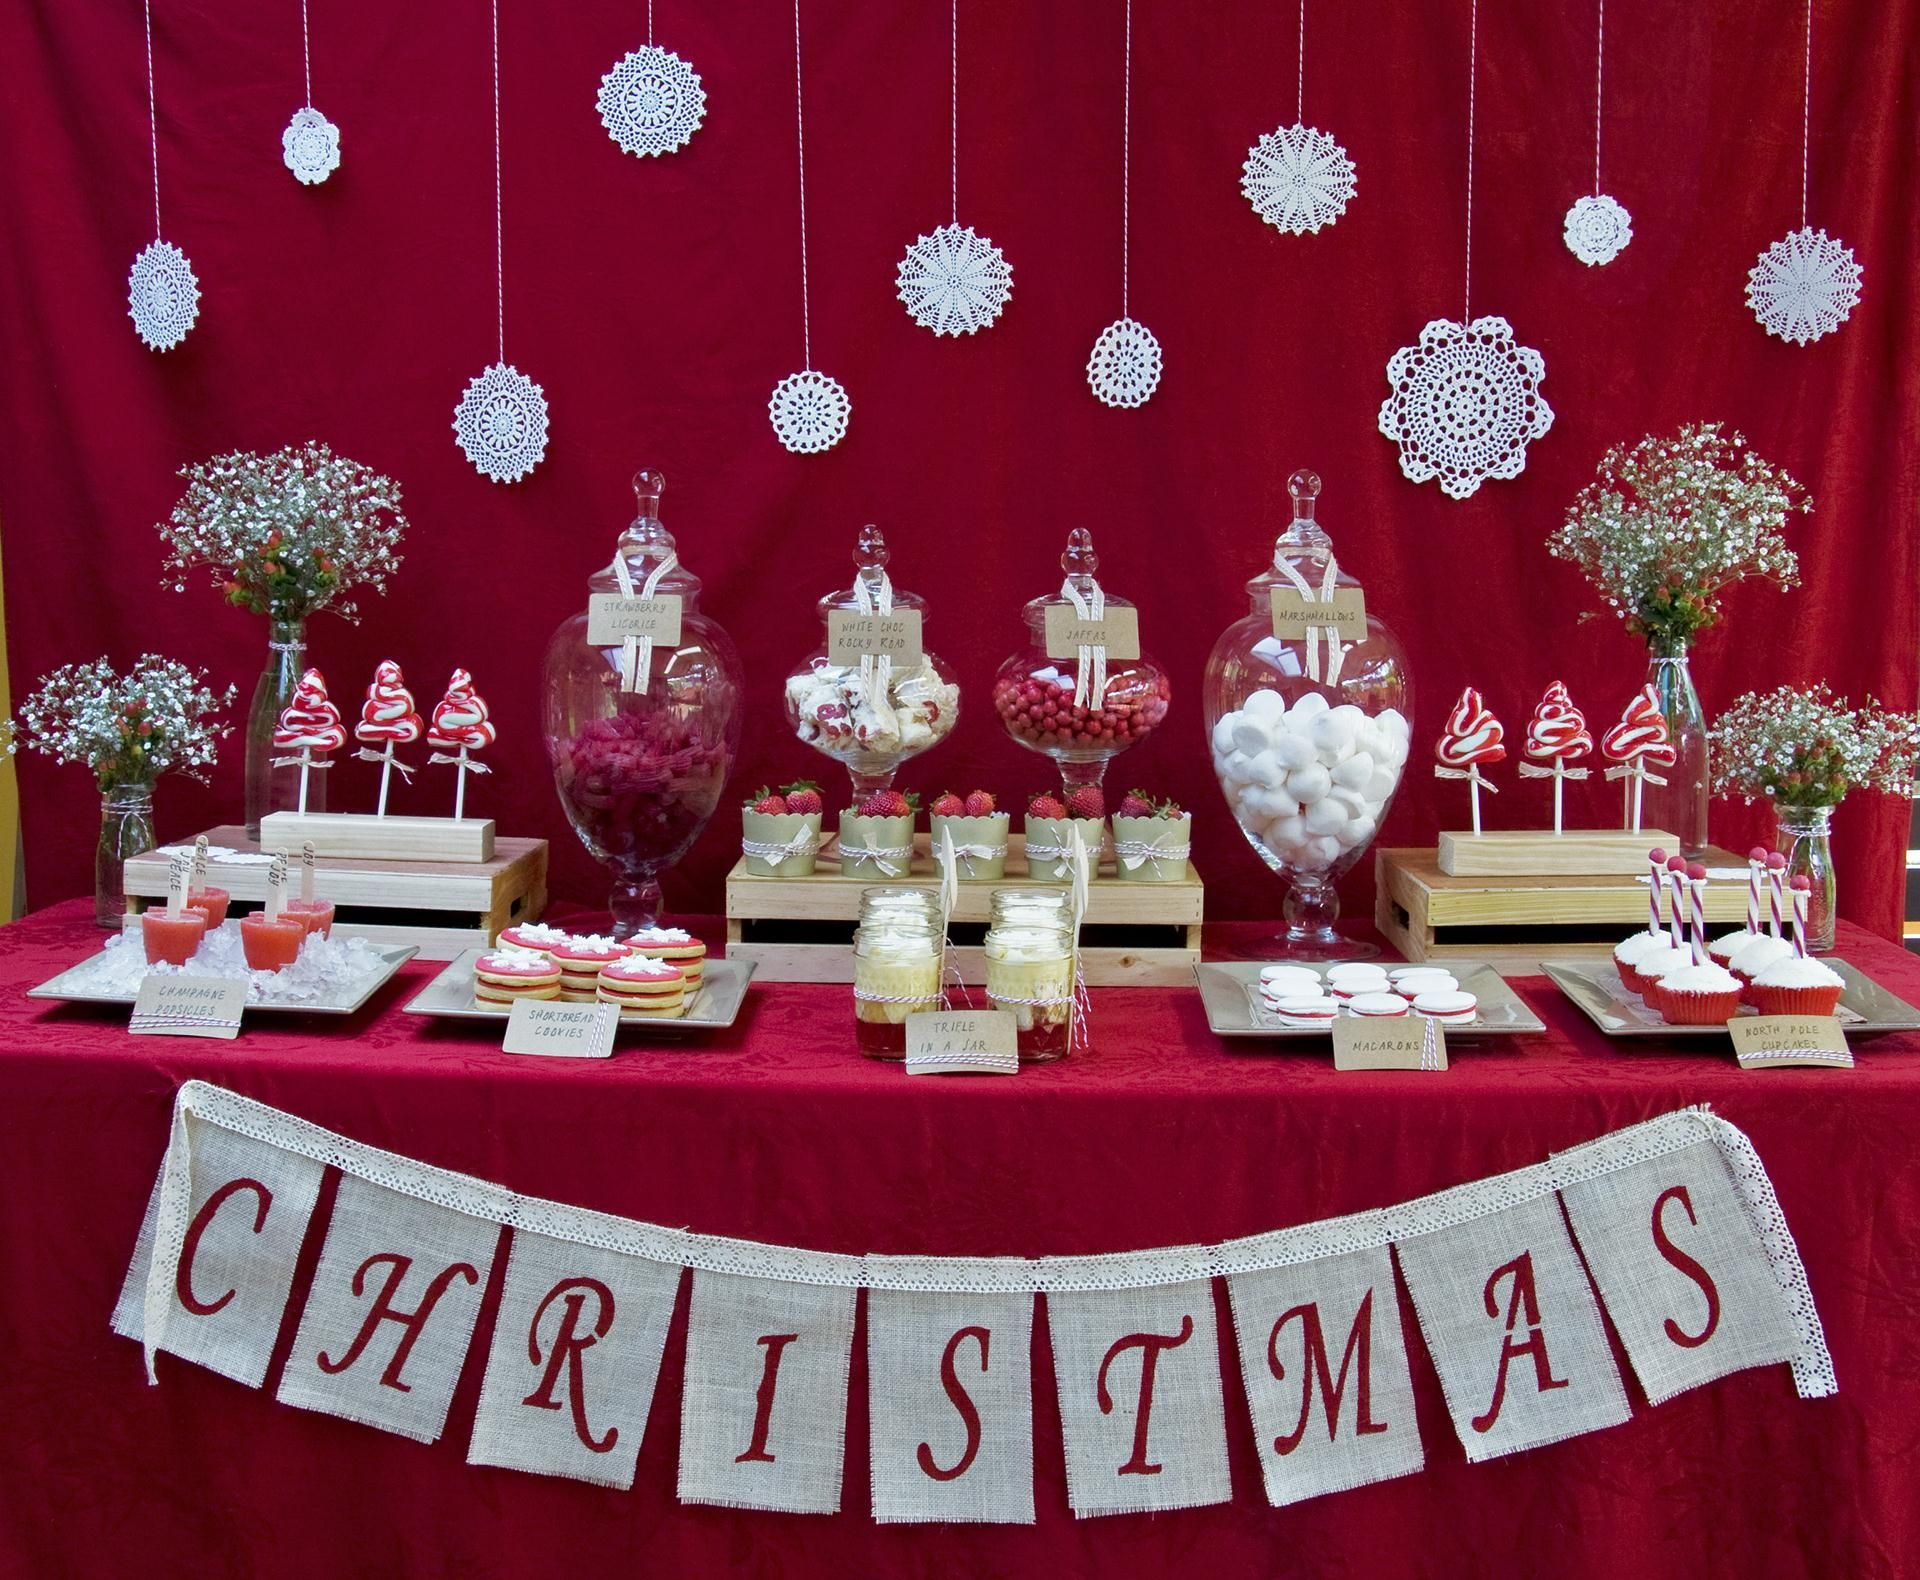 Christmas dessert table decoration ideas - Holiday Decorating Flower Walls For Dessert Tables Christmas Dessert Table Recipes Table Featured In Breeze Magazine